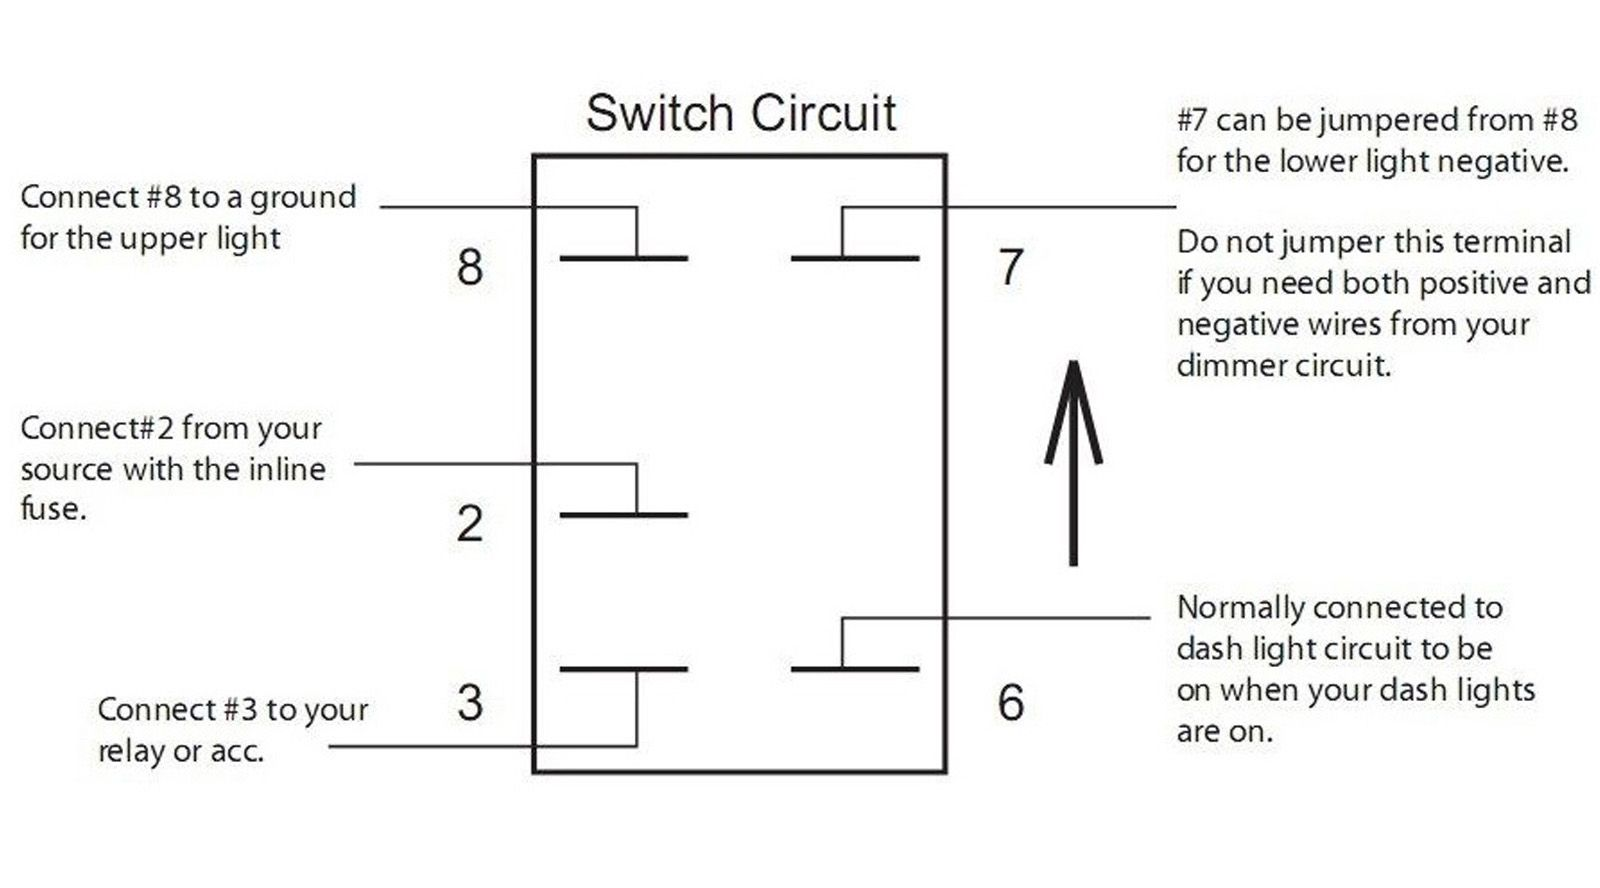 f8cad258f628b01deccc97f77c51cf52 wiring an arb switch yahoo search results yahoo canada image arb reversing camera wiring diagram at alyssarenee.co